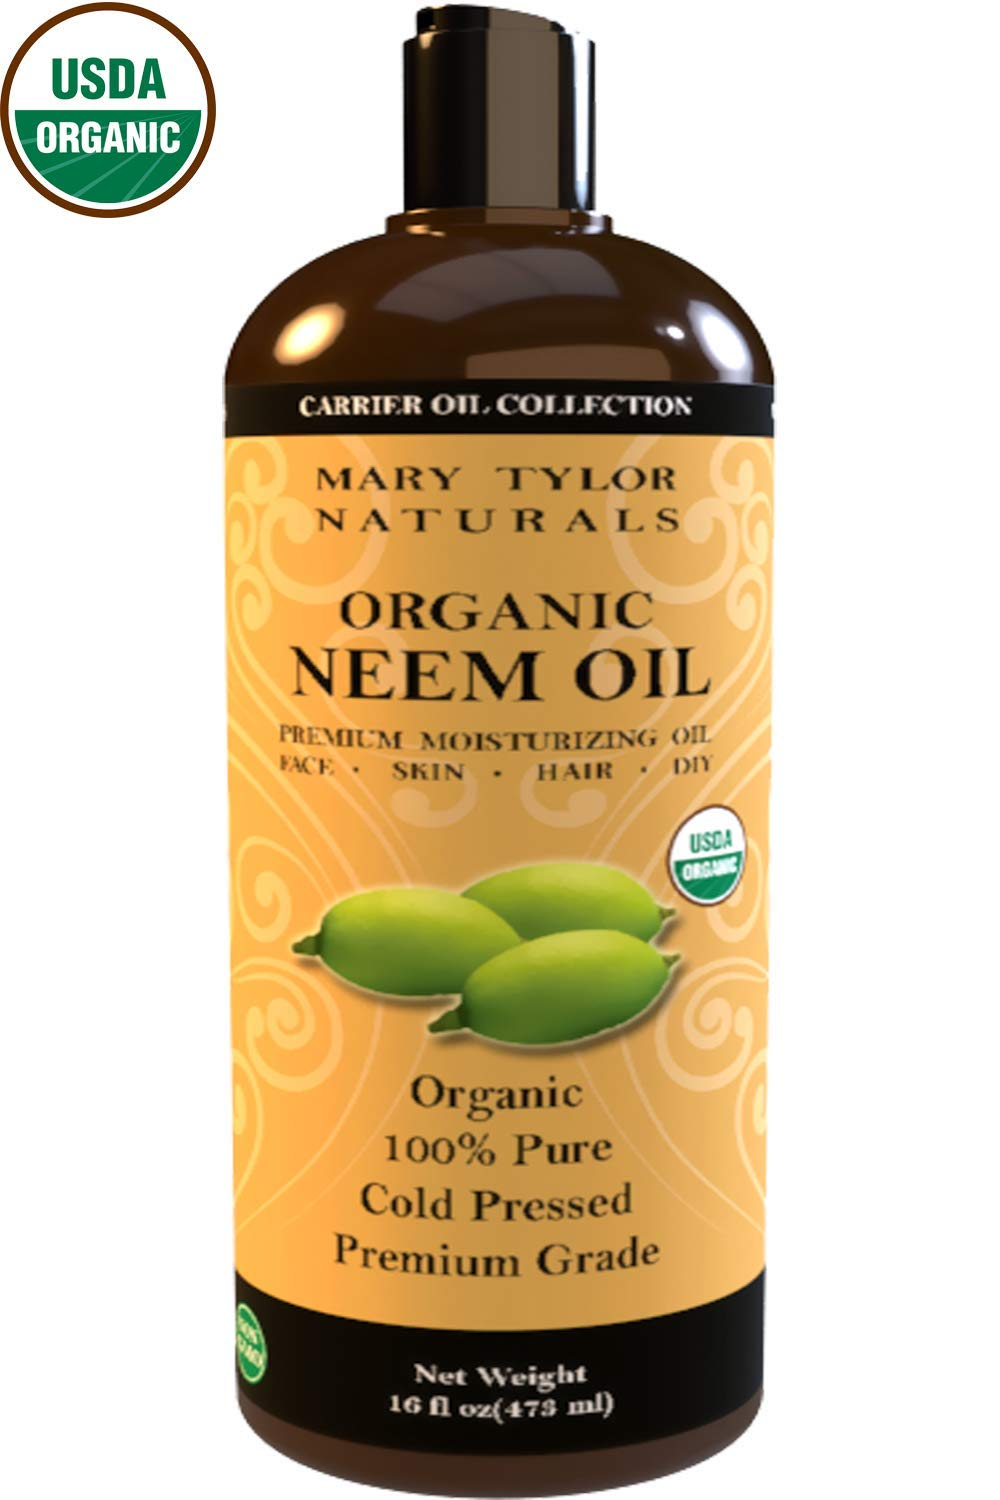 Neem Oil (16 oz), Certified Organic, Cold Pressed, Unrefined, Premium Quality, 100% Pure Great for Skincare and Hair Care by Mary Tylor Naturals by Mary Tylor Naturals